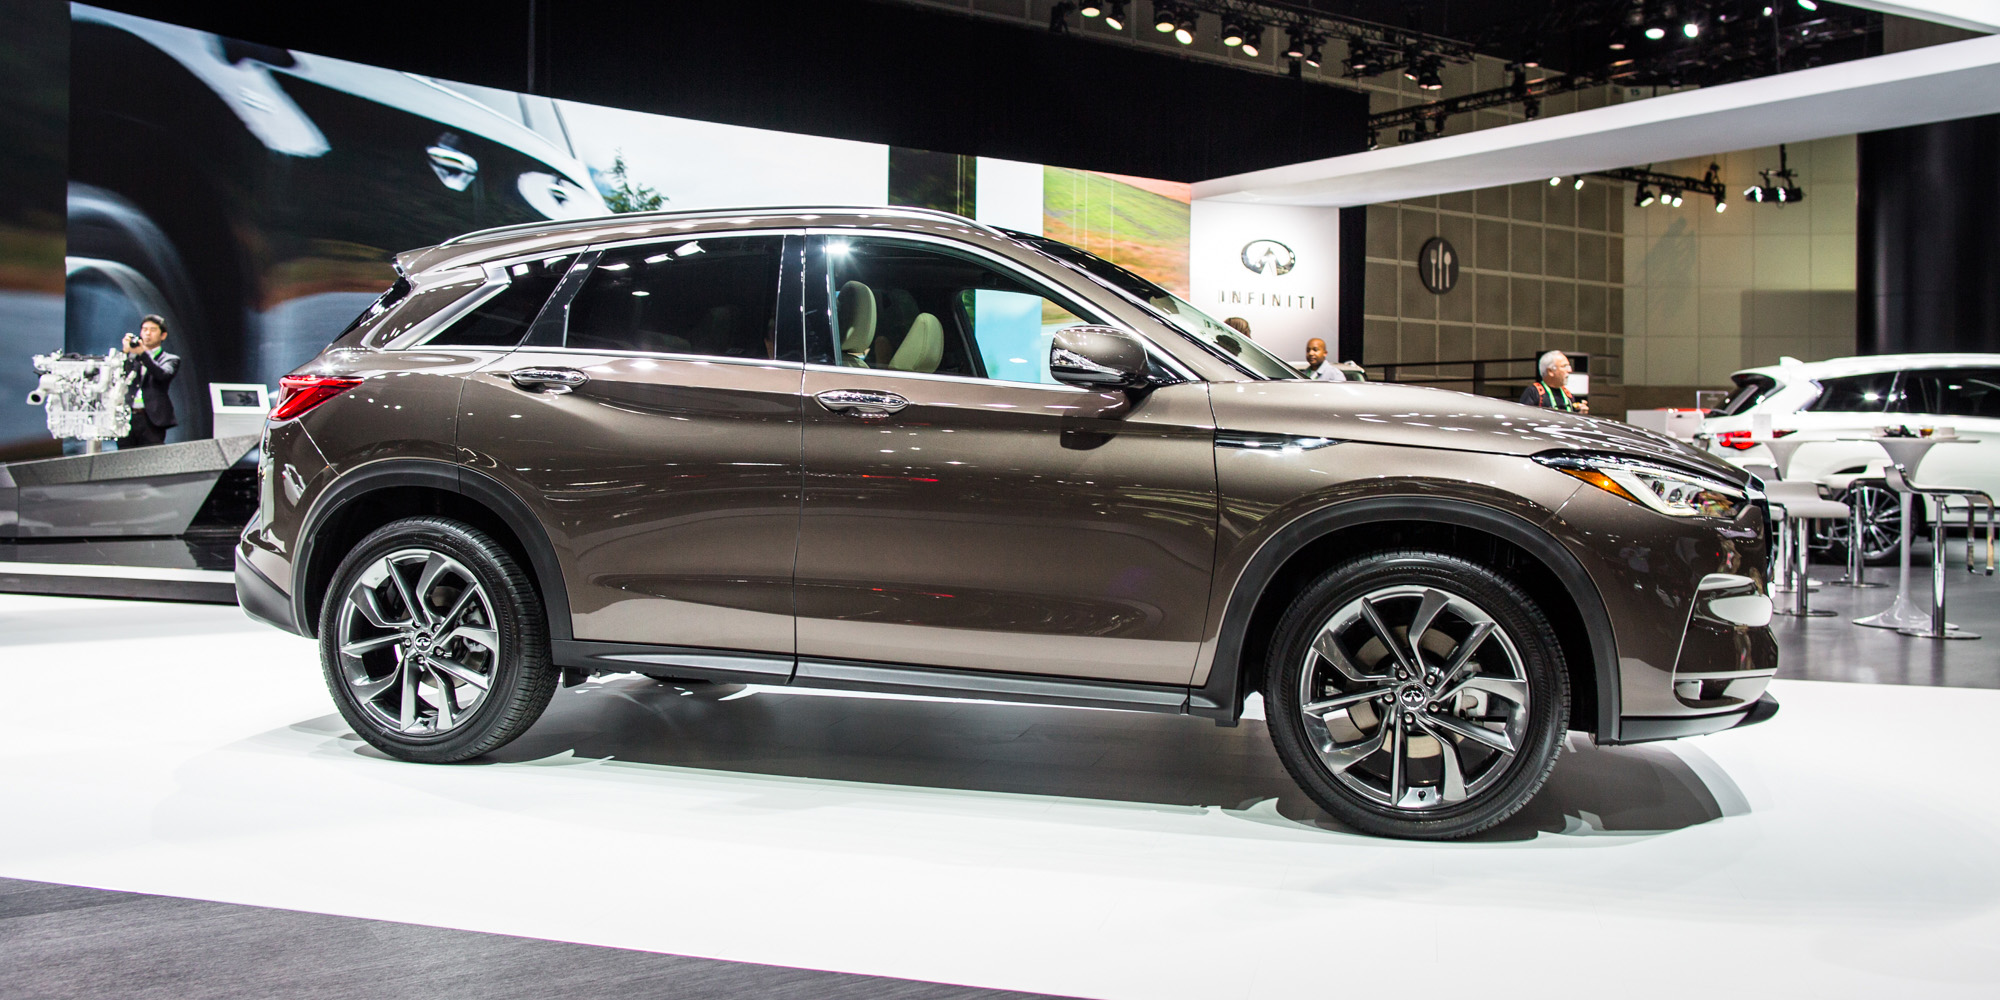 2018 infiniti qx50 fully unveiled in la photos 1 of 19. Black Bedroom Furniture Sets. Home Design Ideas